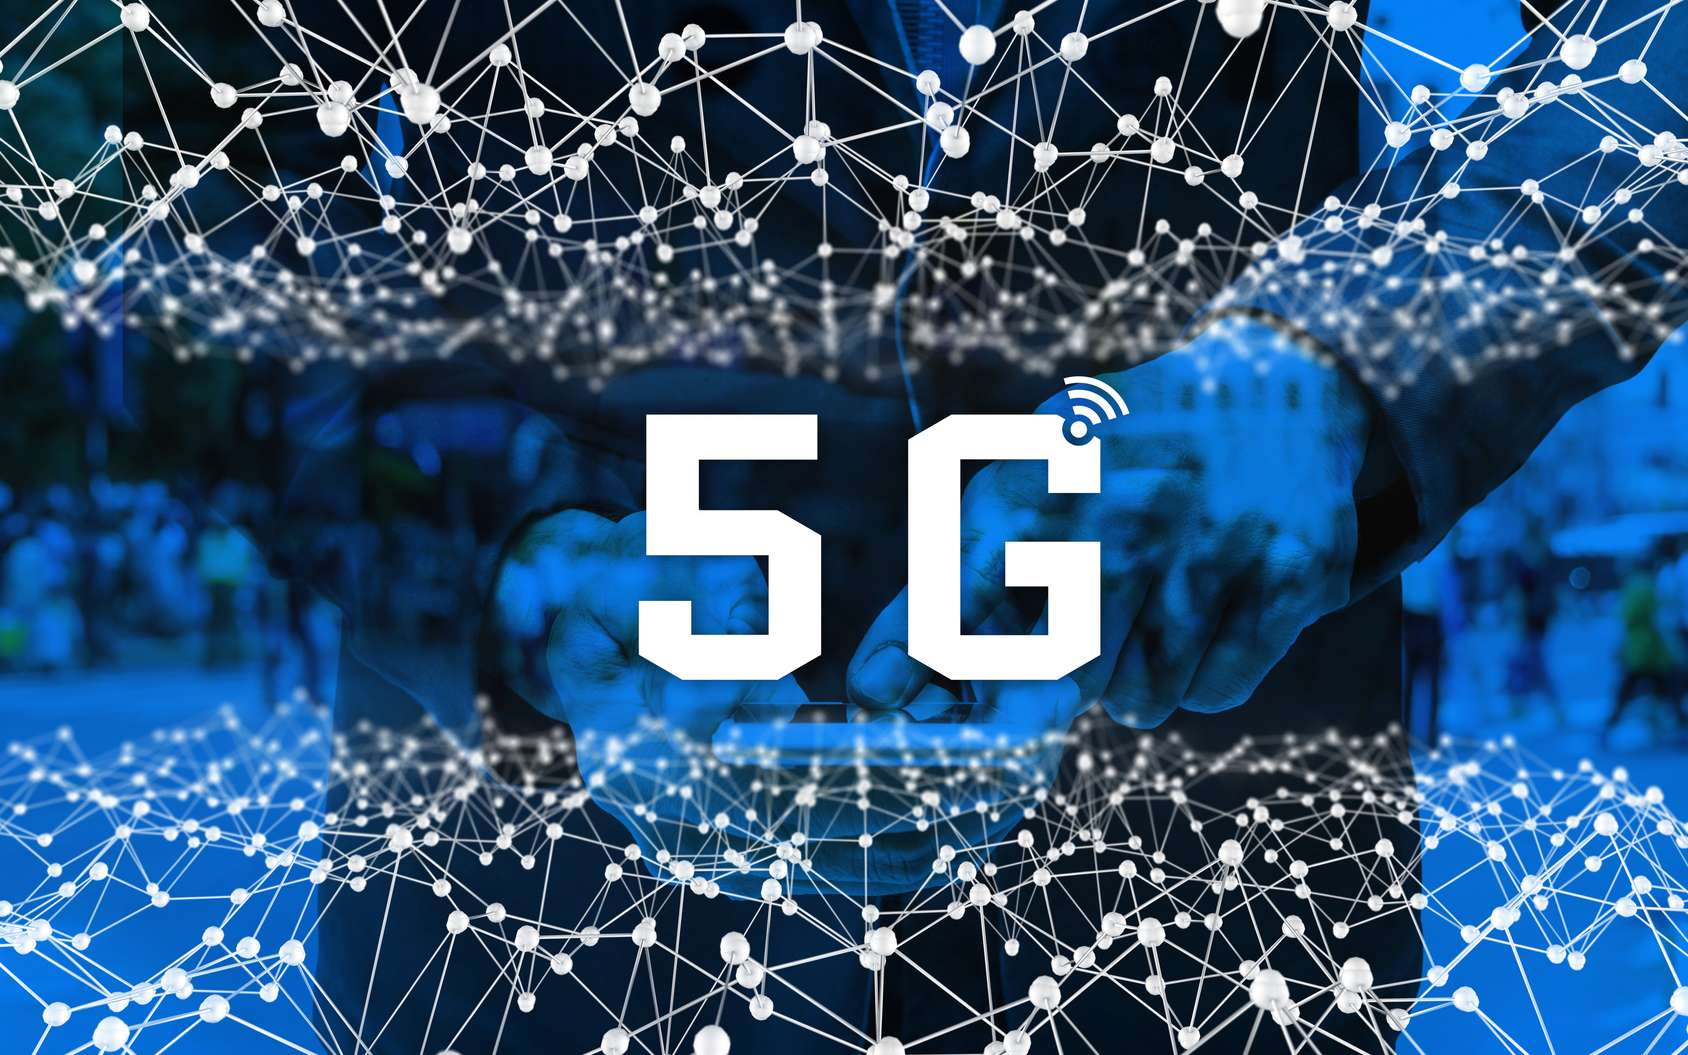 L'Arcep engage la procédure d'attribution des fréquences 5G en France. © Fotolia